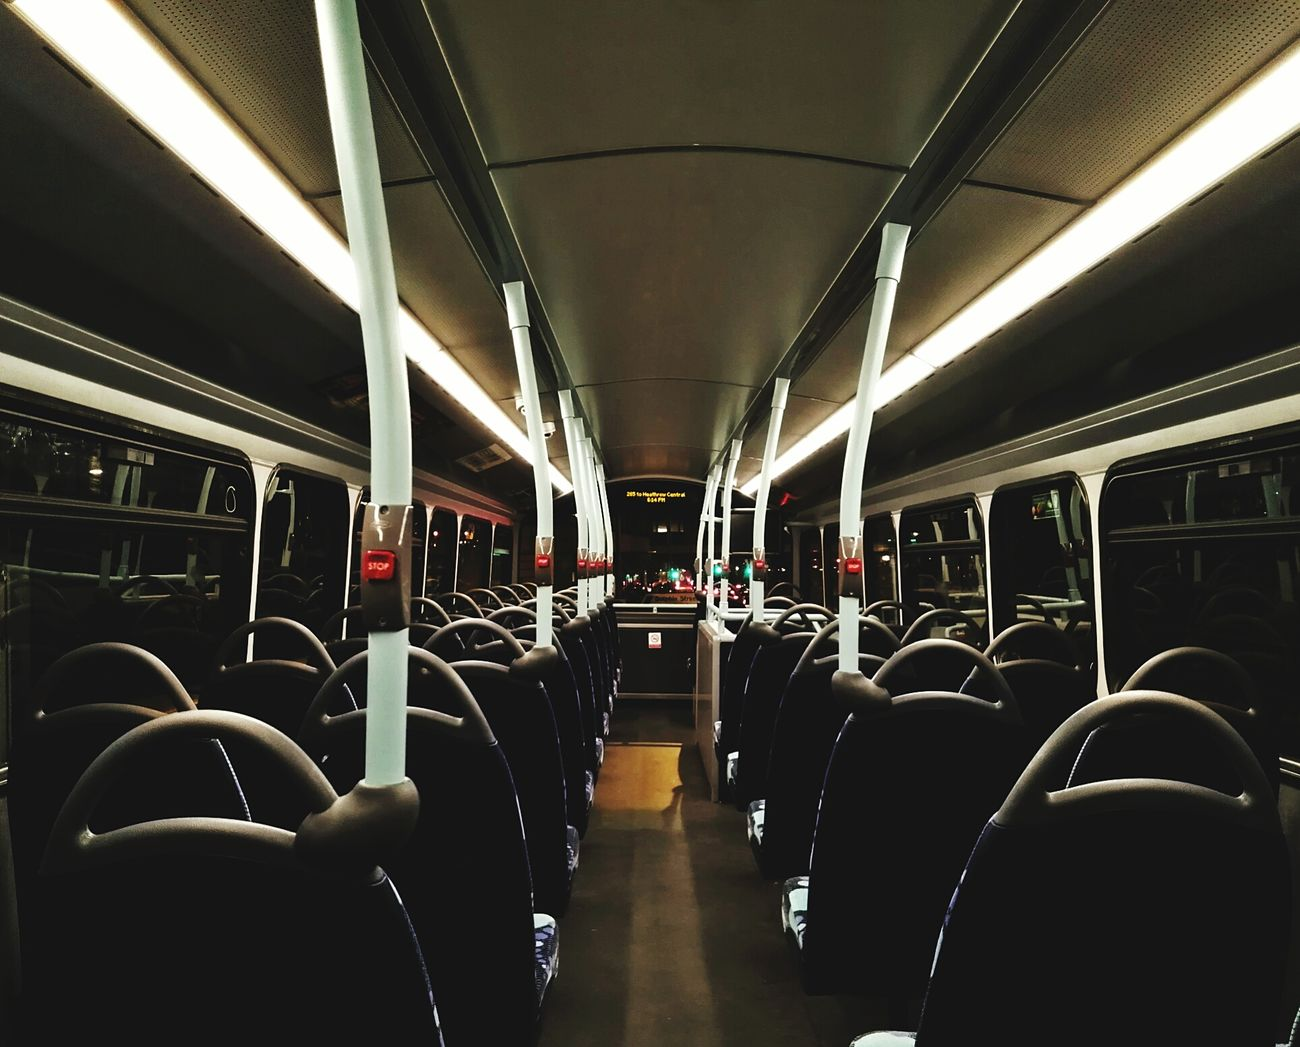 Vehicle Seat Transportation Travel Public Transportation Indoors  No People Day Hanging Out Transportation Commercial Land Vehicle Stationary London Bus London Night